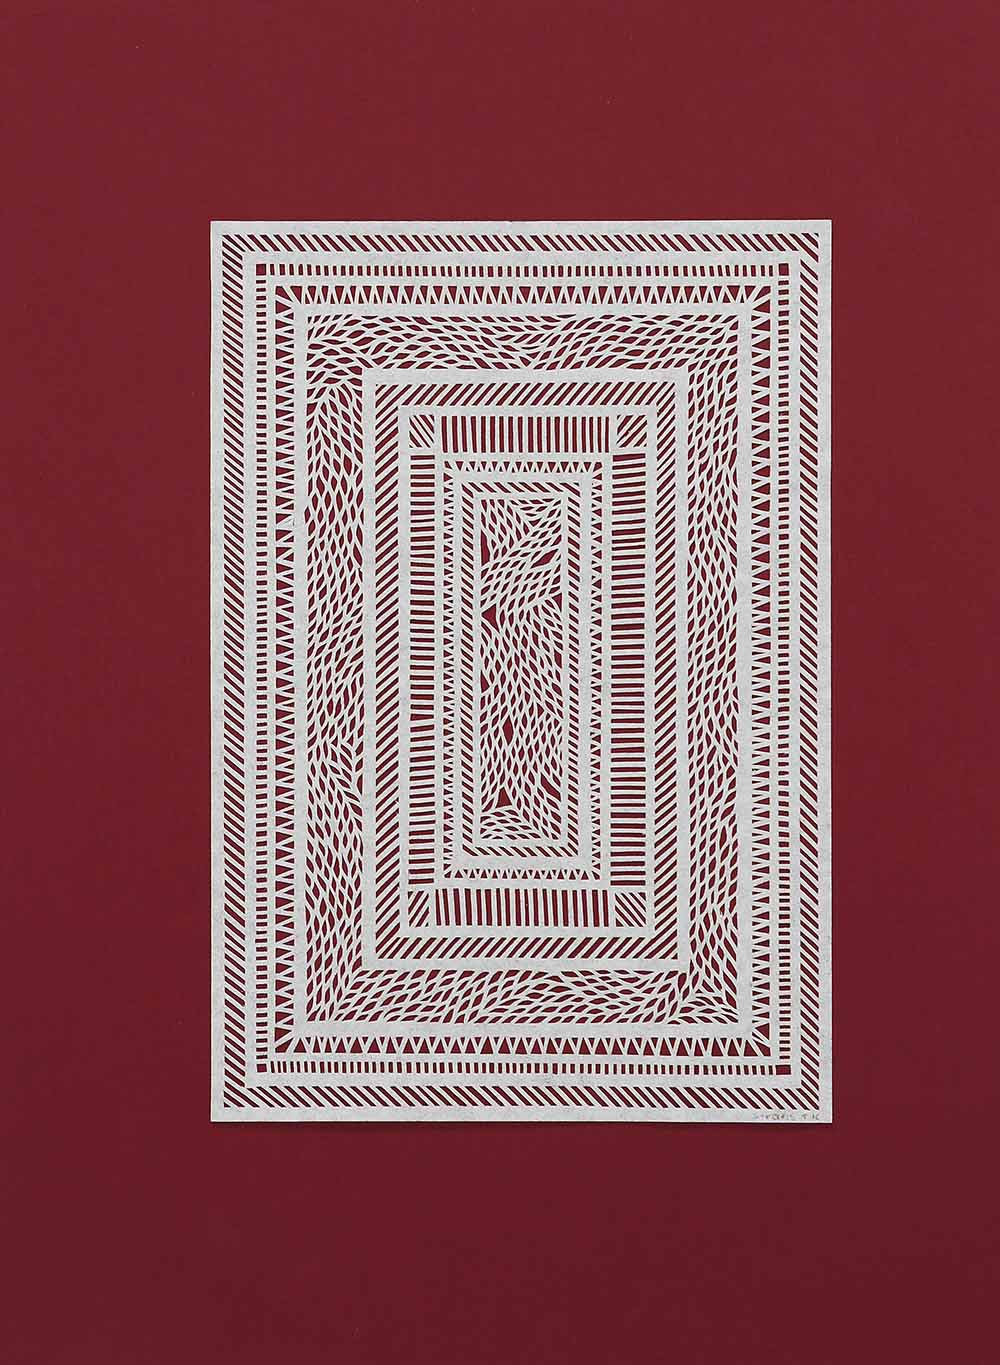 Untitled White Geometrical Medium on Red.jpg